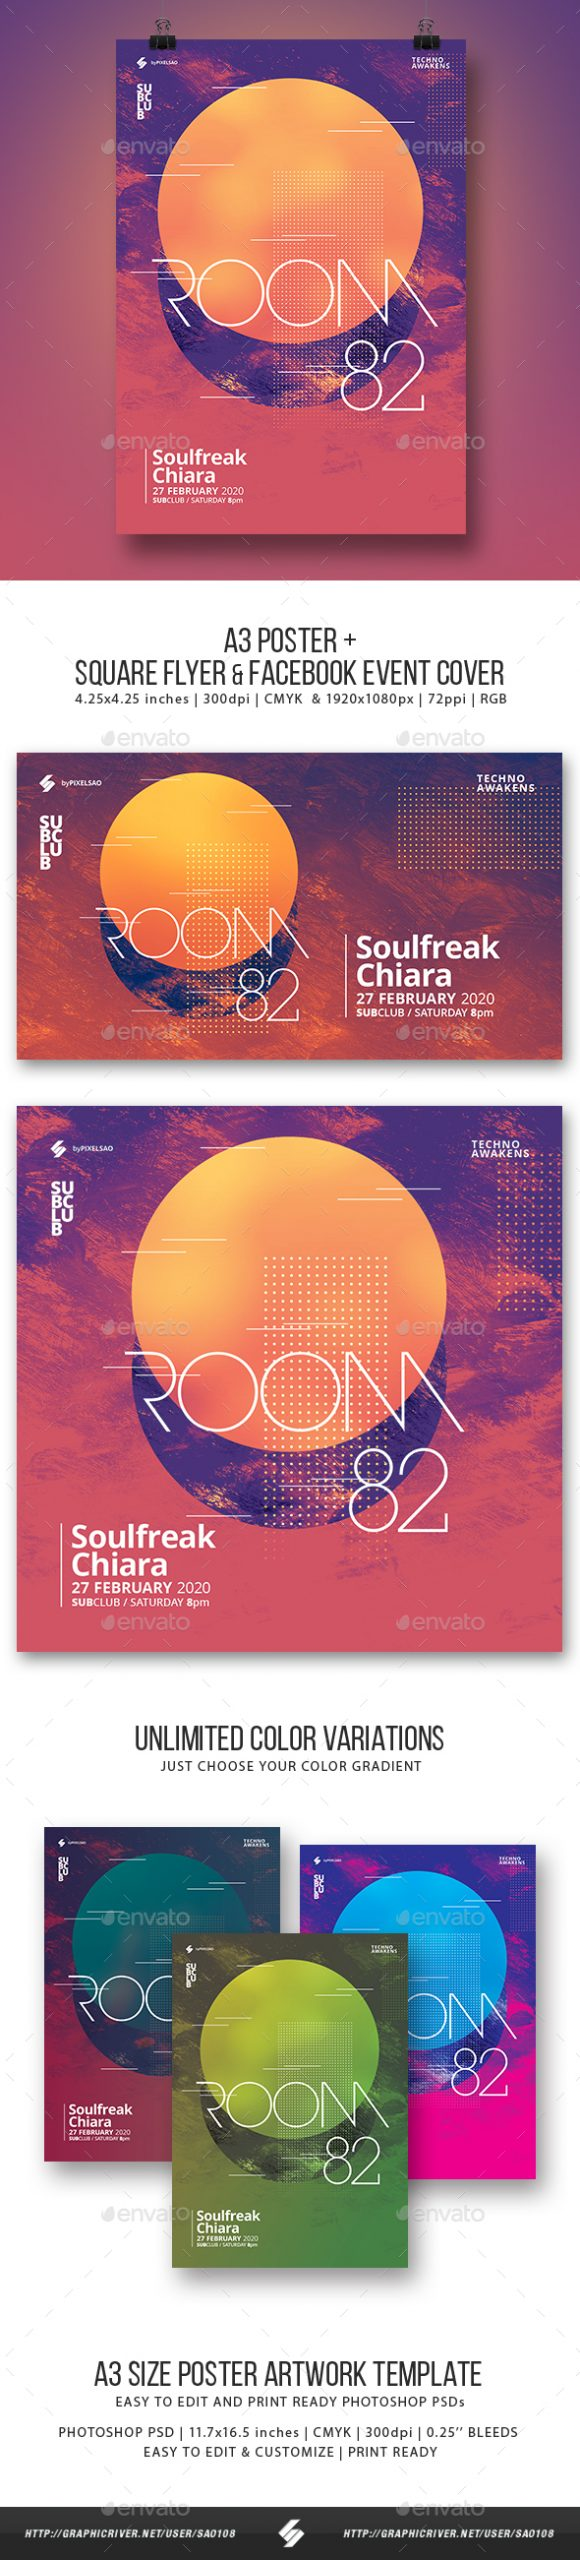 Flyers PSD – Room 82 – Minimal Party Flyer / Poster Artwork Template A3 – Download